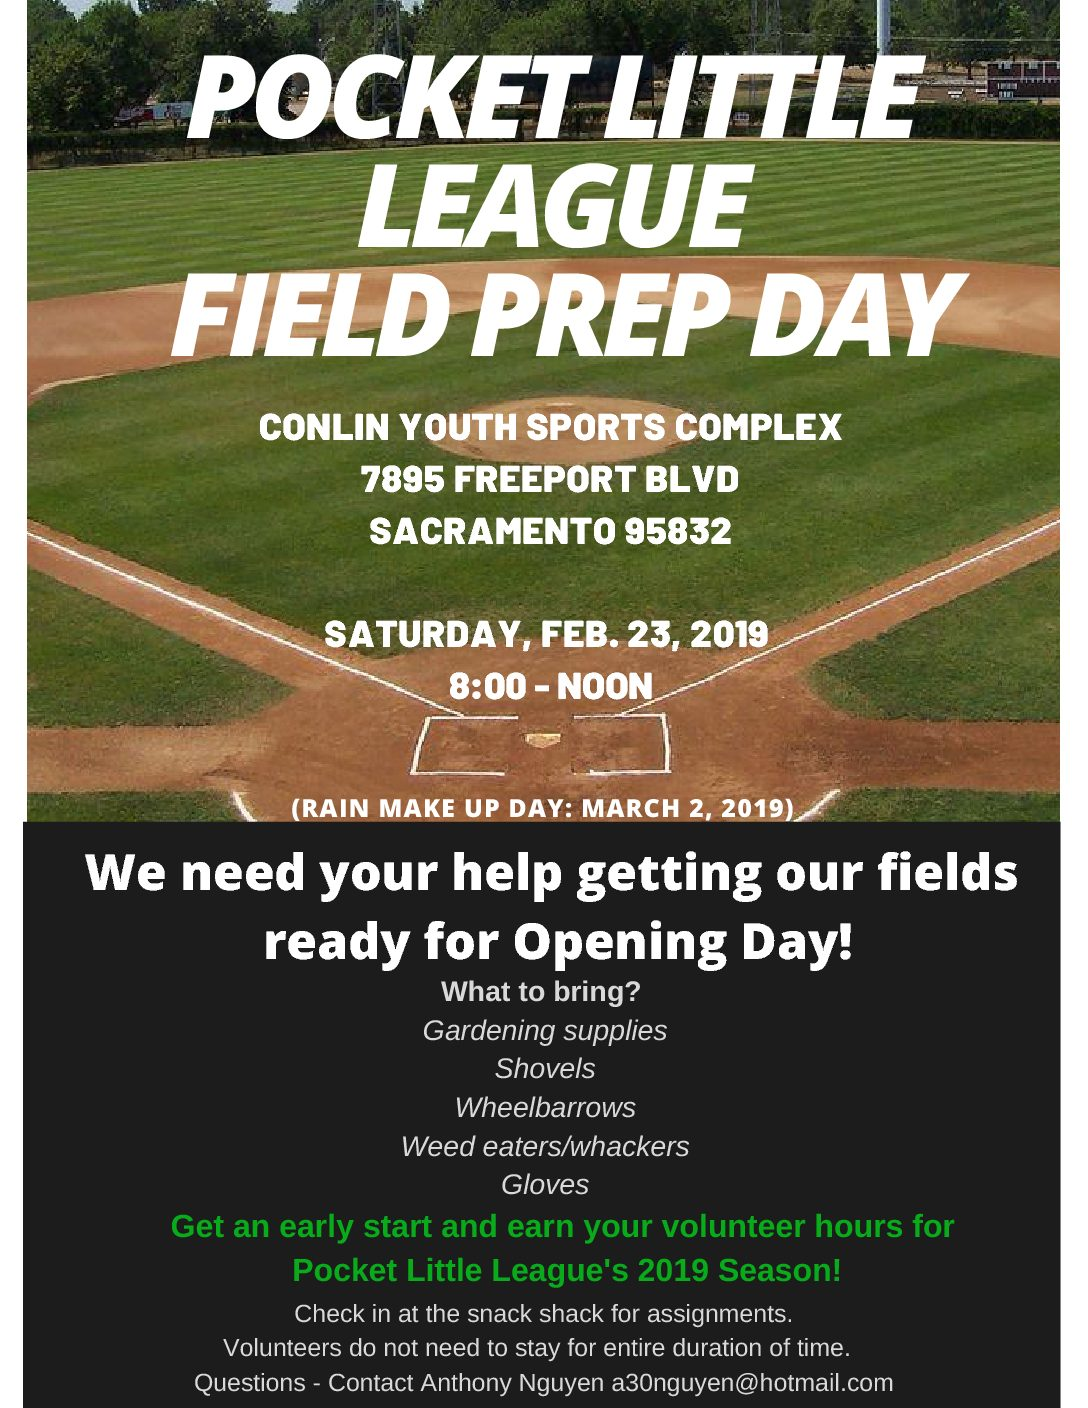 Field Prep Day is Saturday, February 23rd 2019